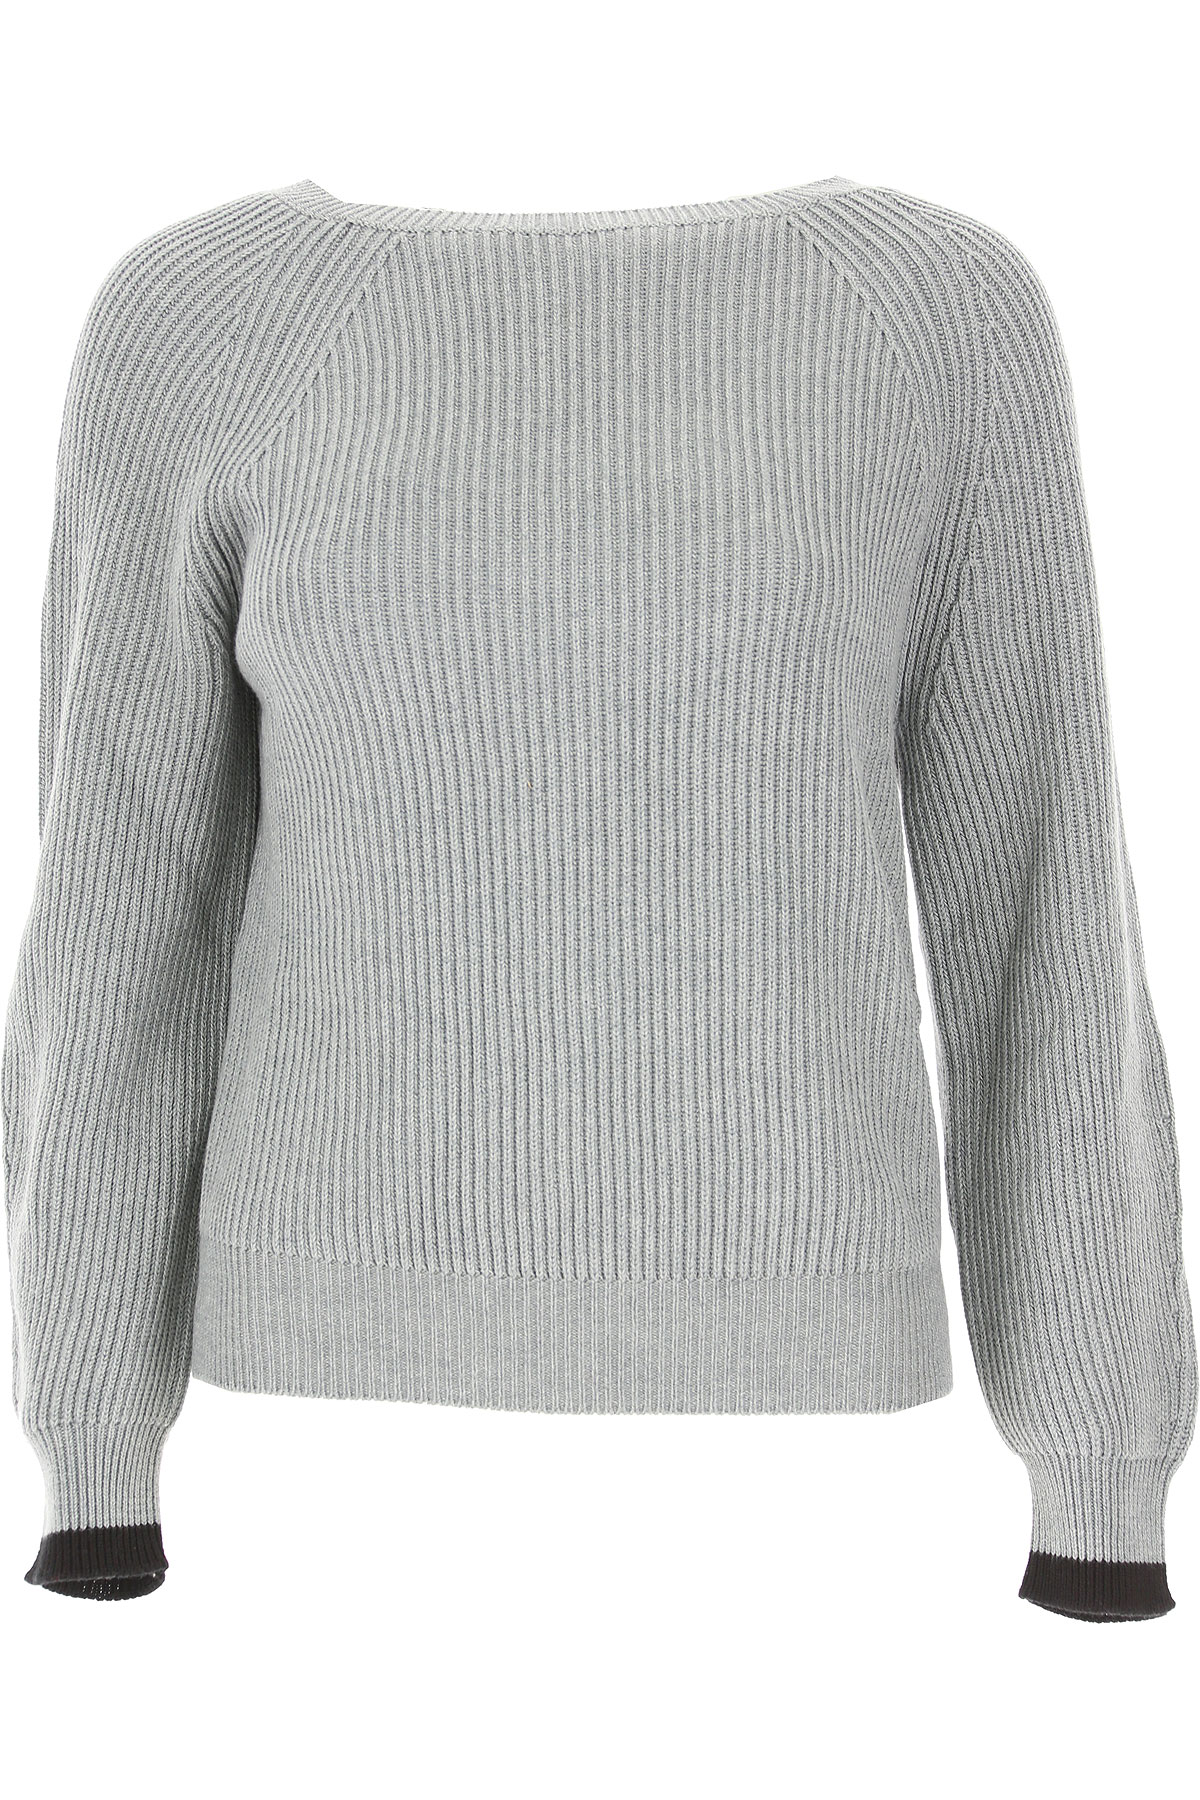 Image of Weekend by Max Mara Sweater for Women Jumper, Grey, Cotton, 2017, 10 2 4 6 8